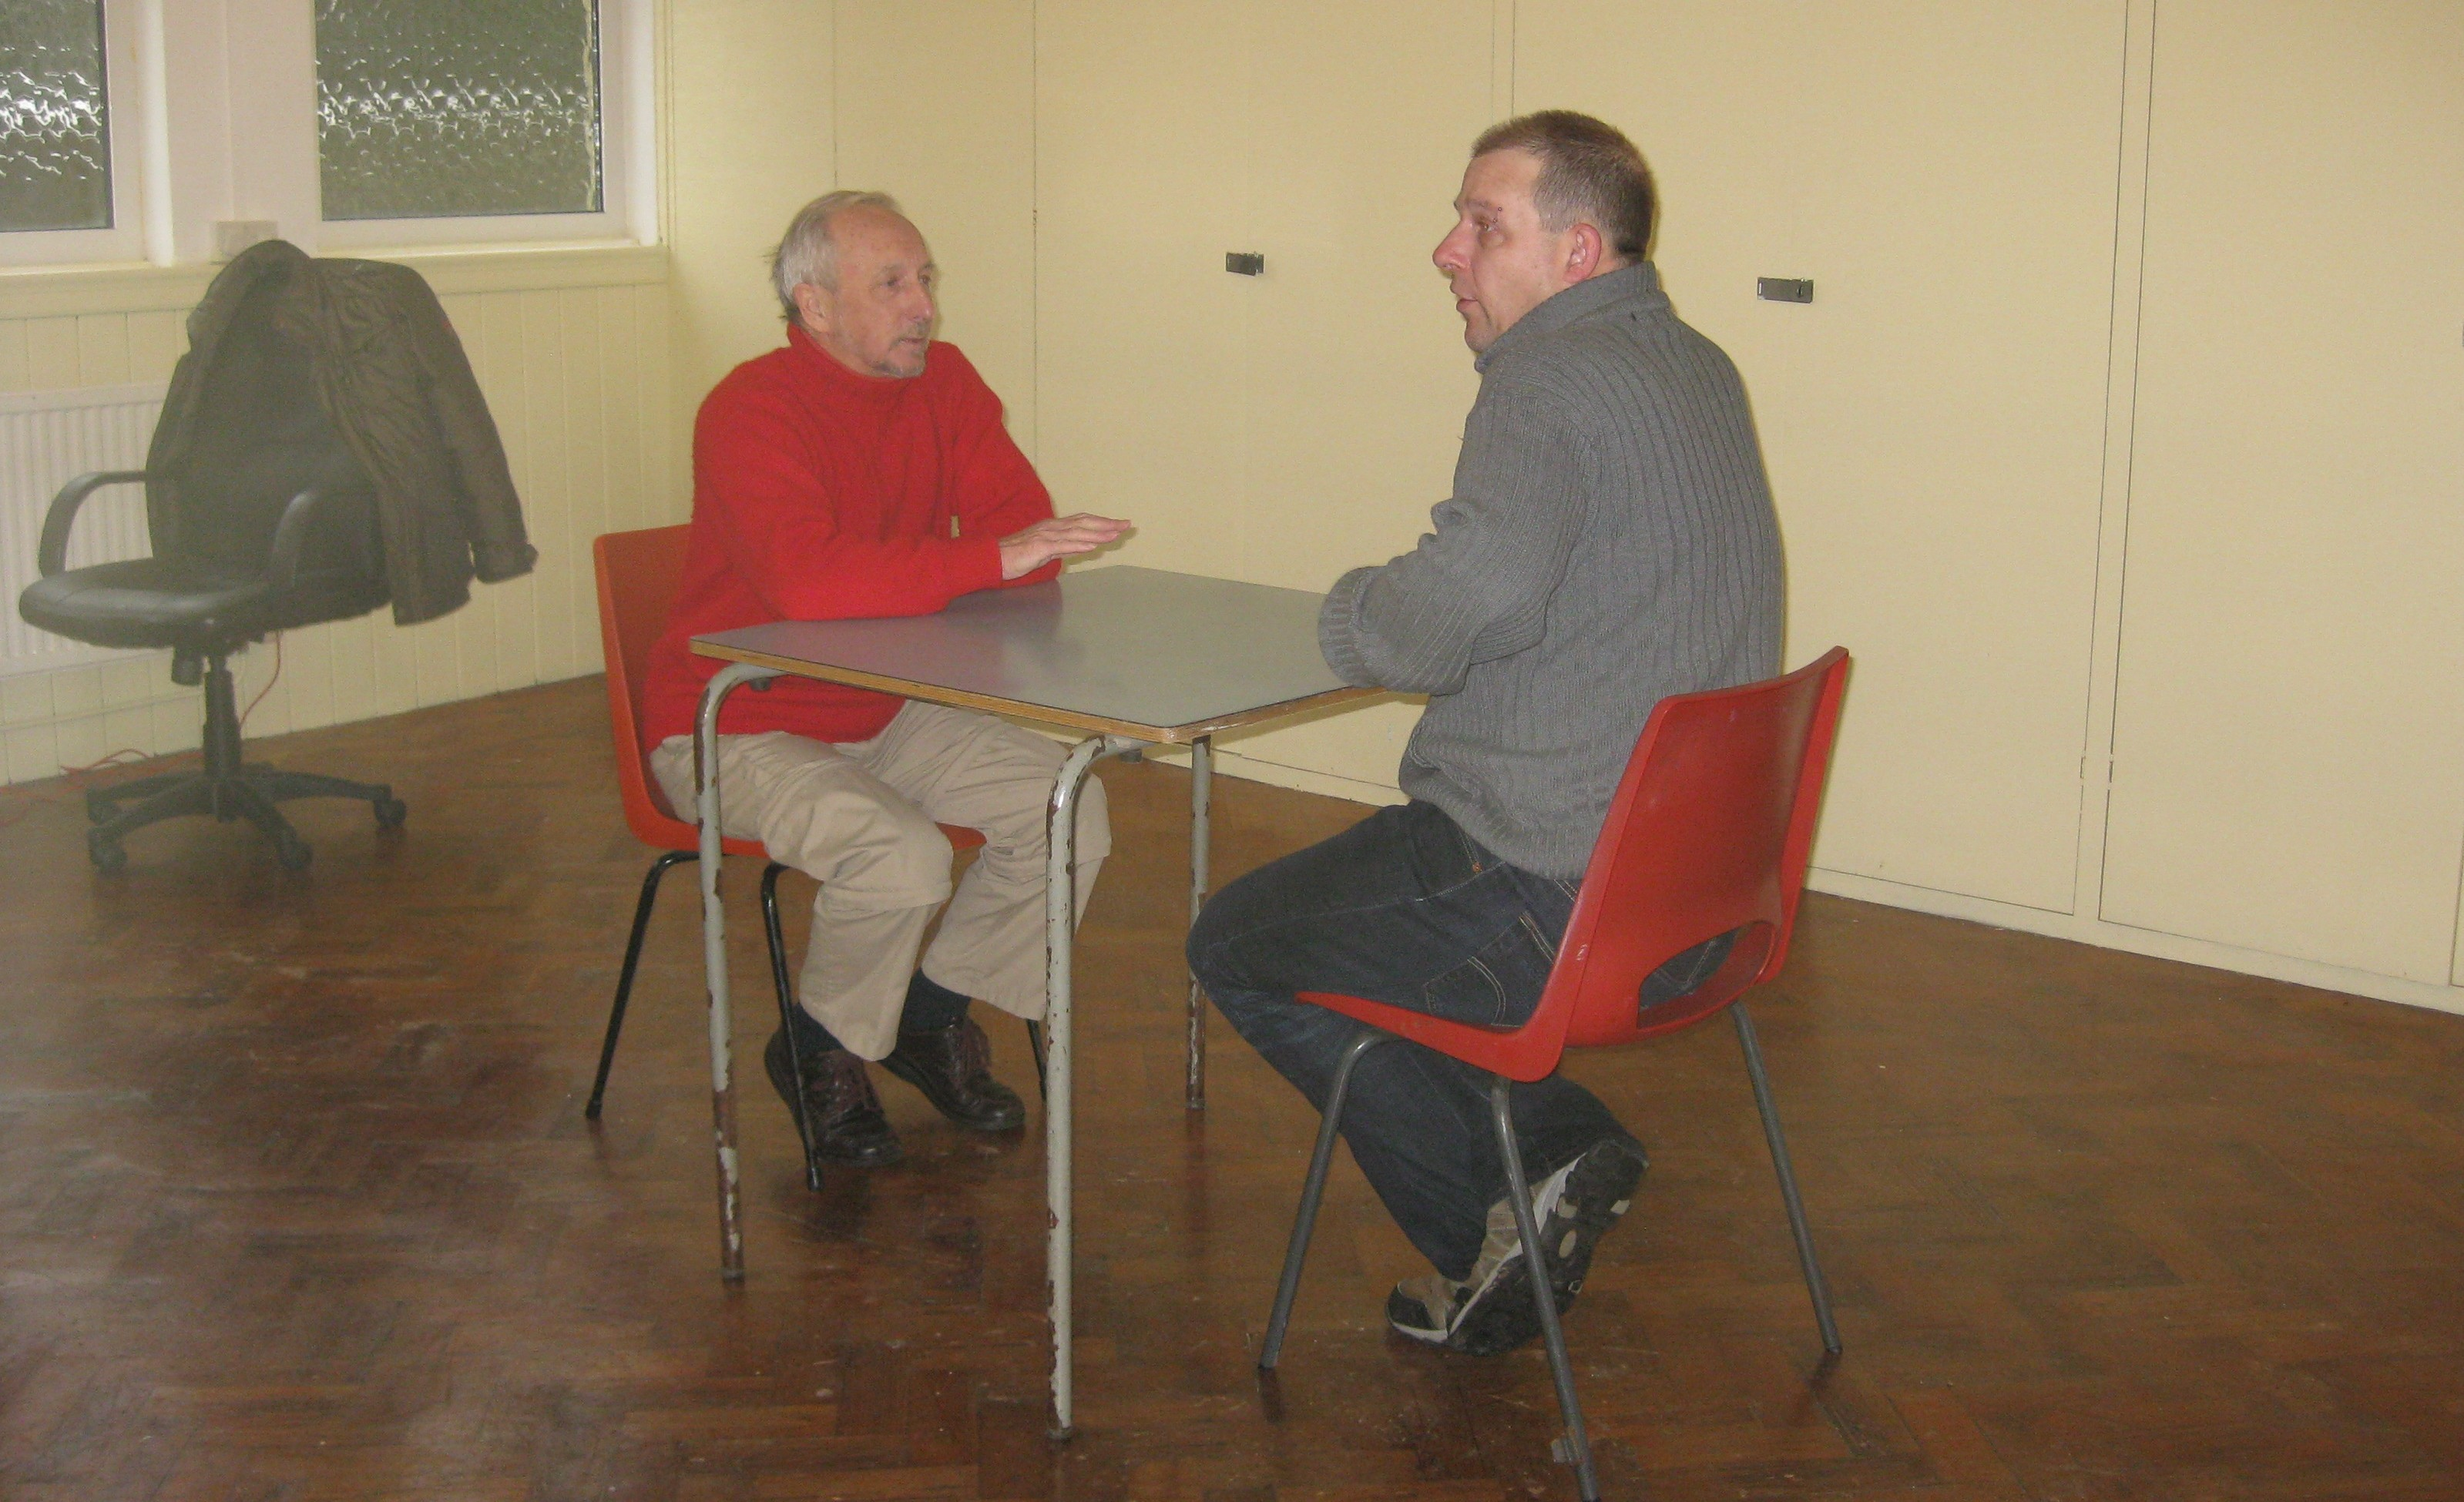 Mentoring and Advice at the Community Centre